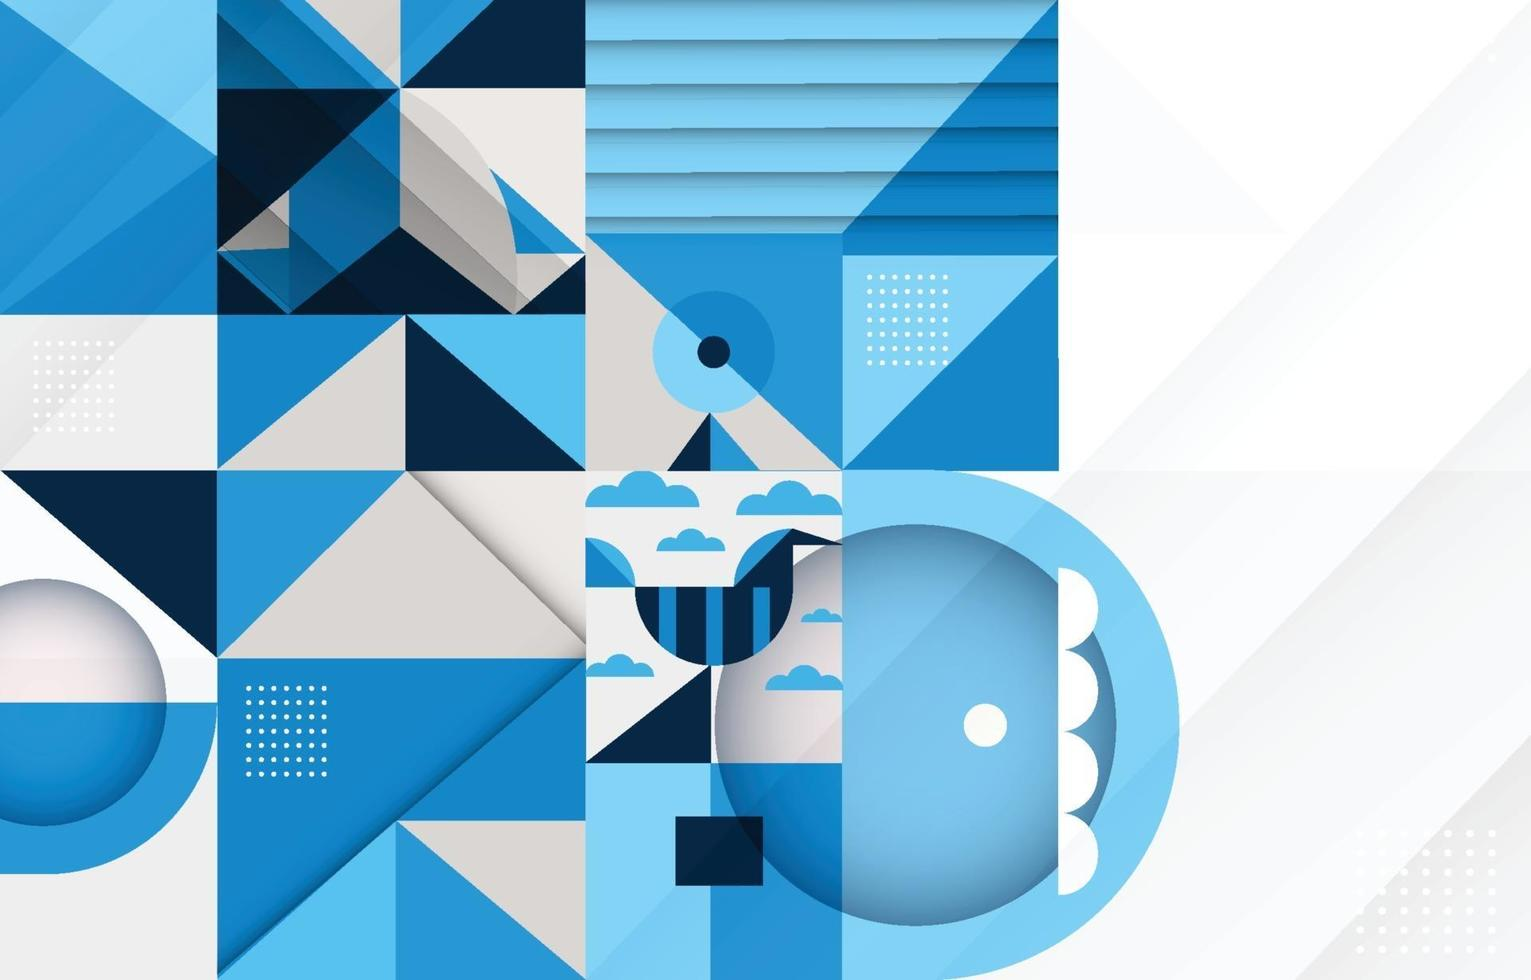 Abstract Geometric Blue Composition Background vector